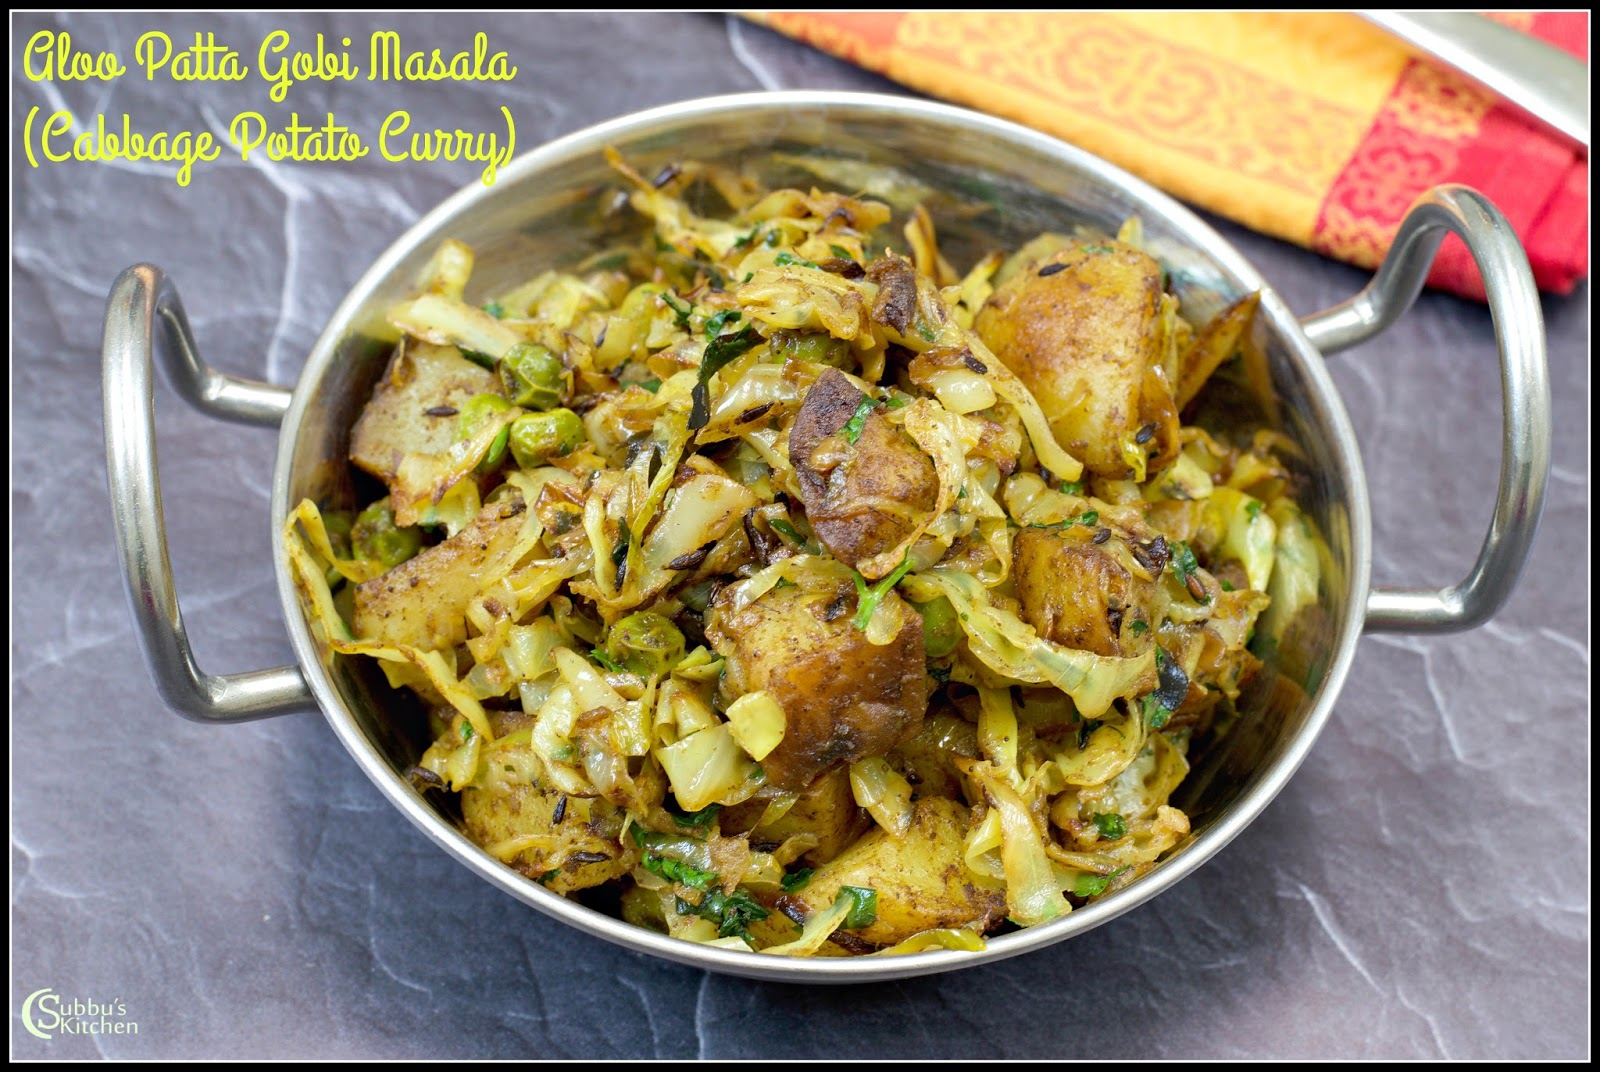 Aloo Patta Gobhi Curry - Potato Cabbage Stir Fry